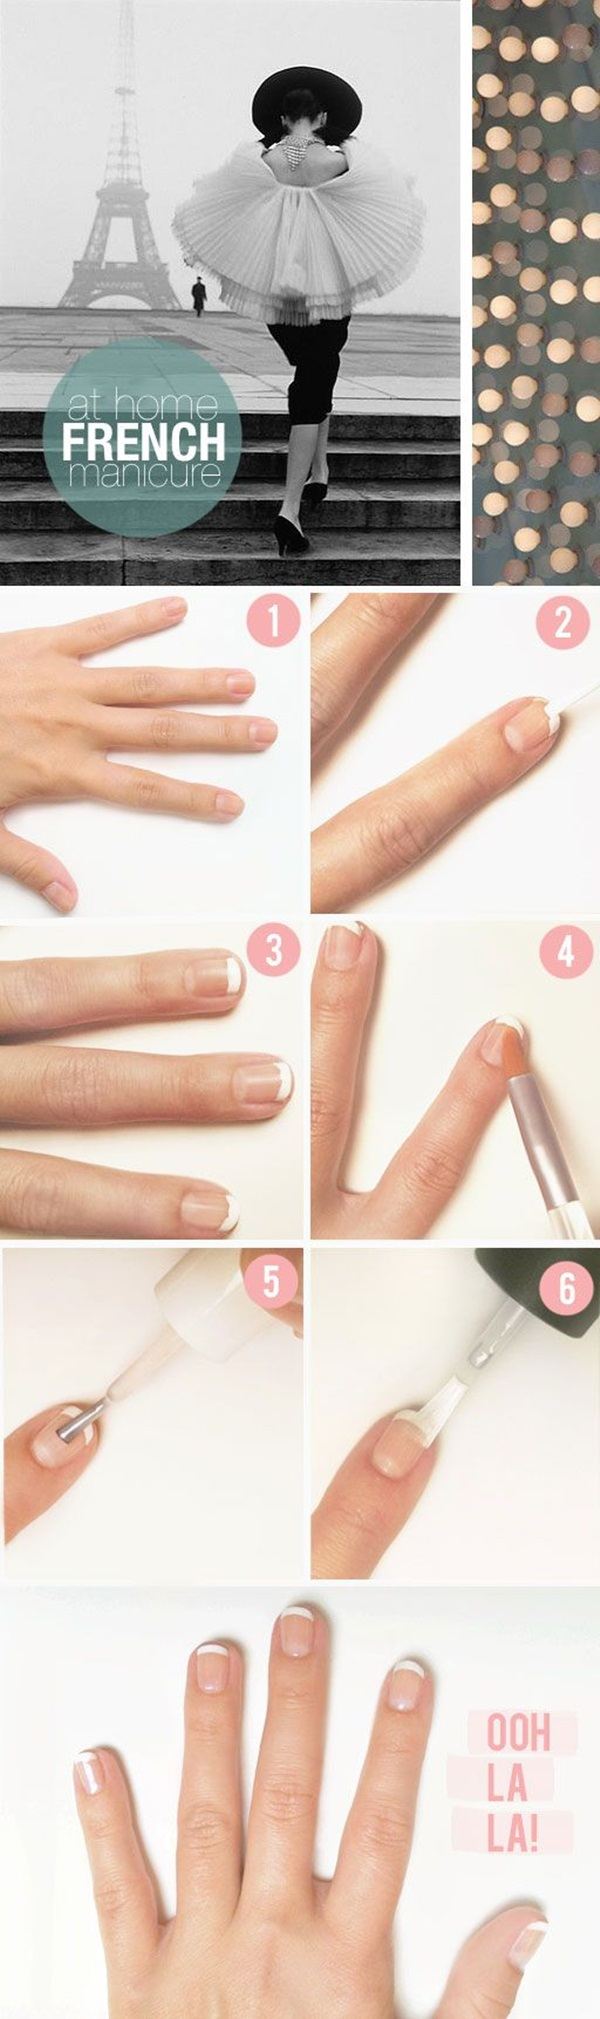 DIY Nail art designs (7)